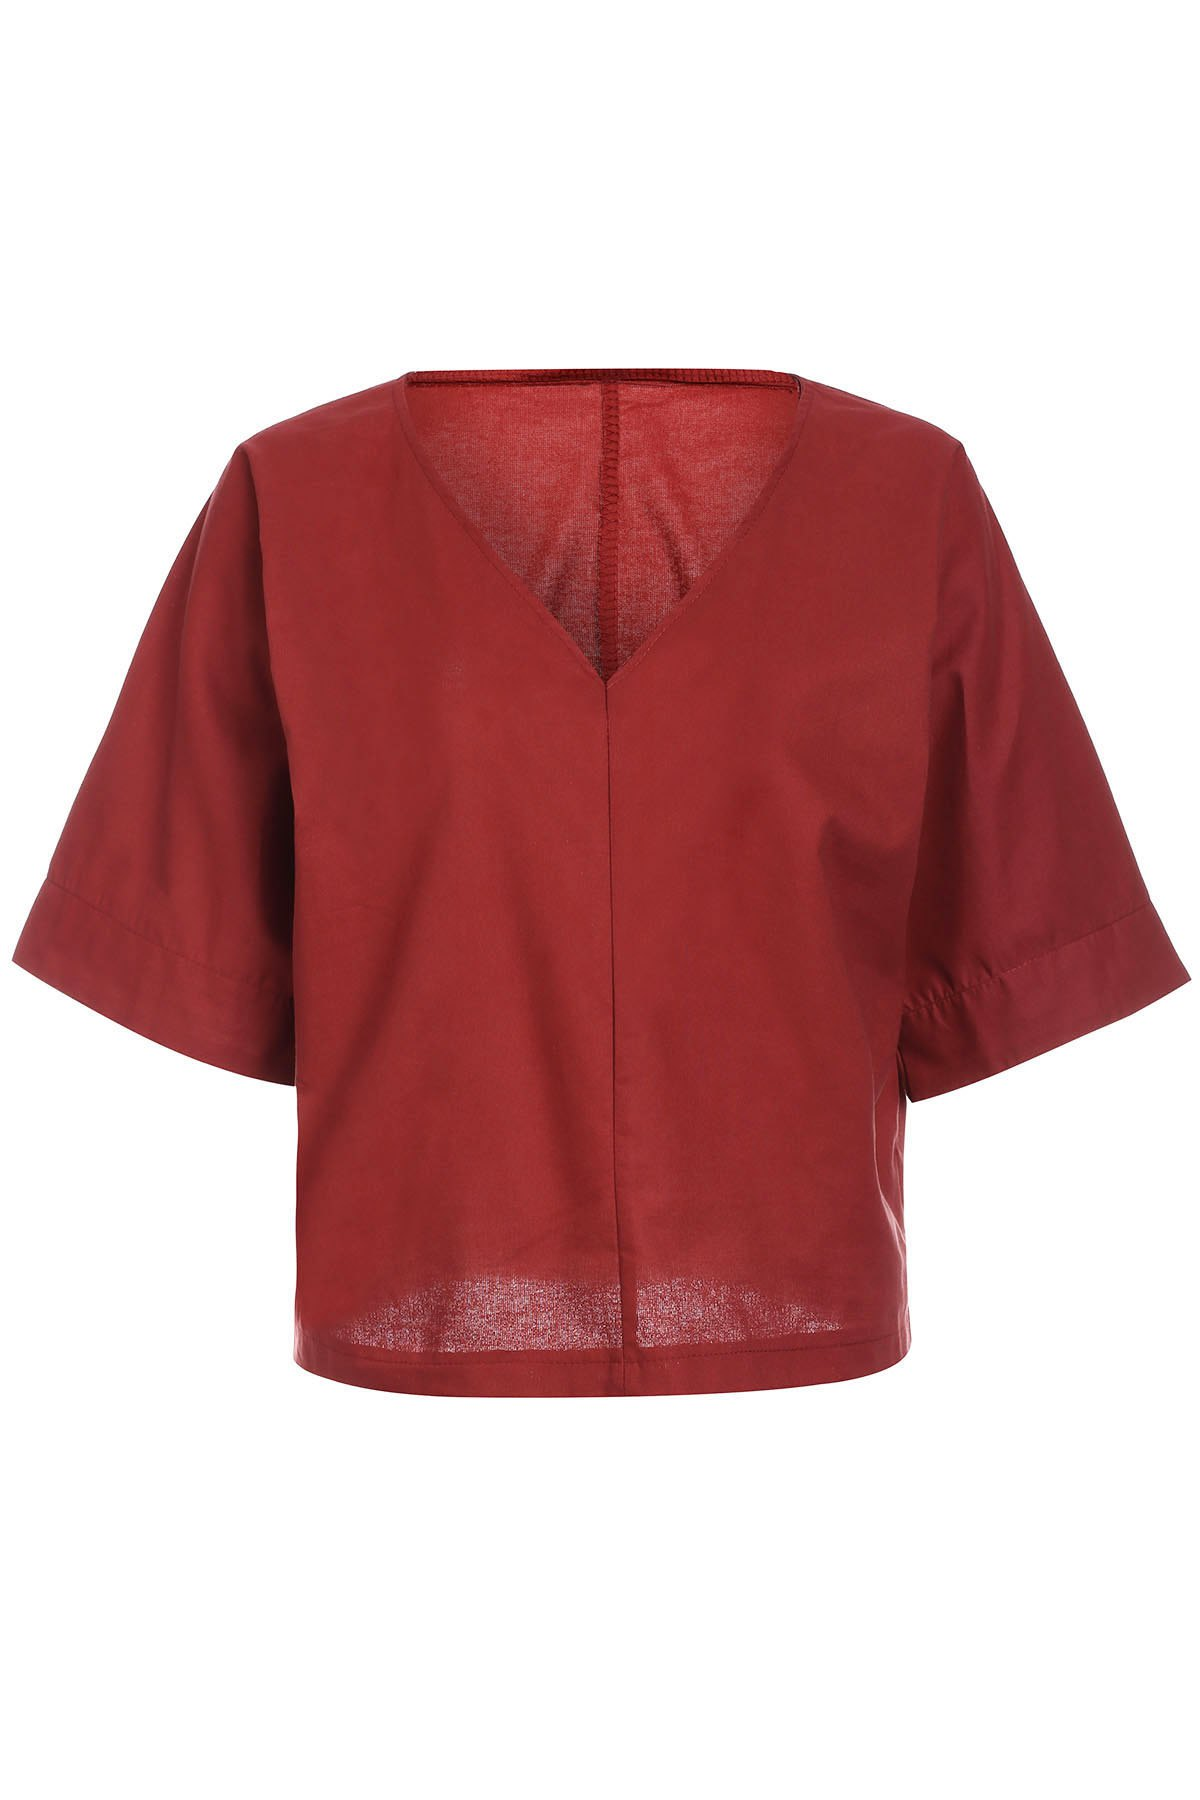 Brief Style 1/2 Sleeve V-Neck Solid Color Loose-Fitting Women's Blouse - BRICK RED S